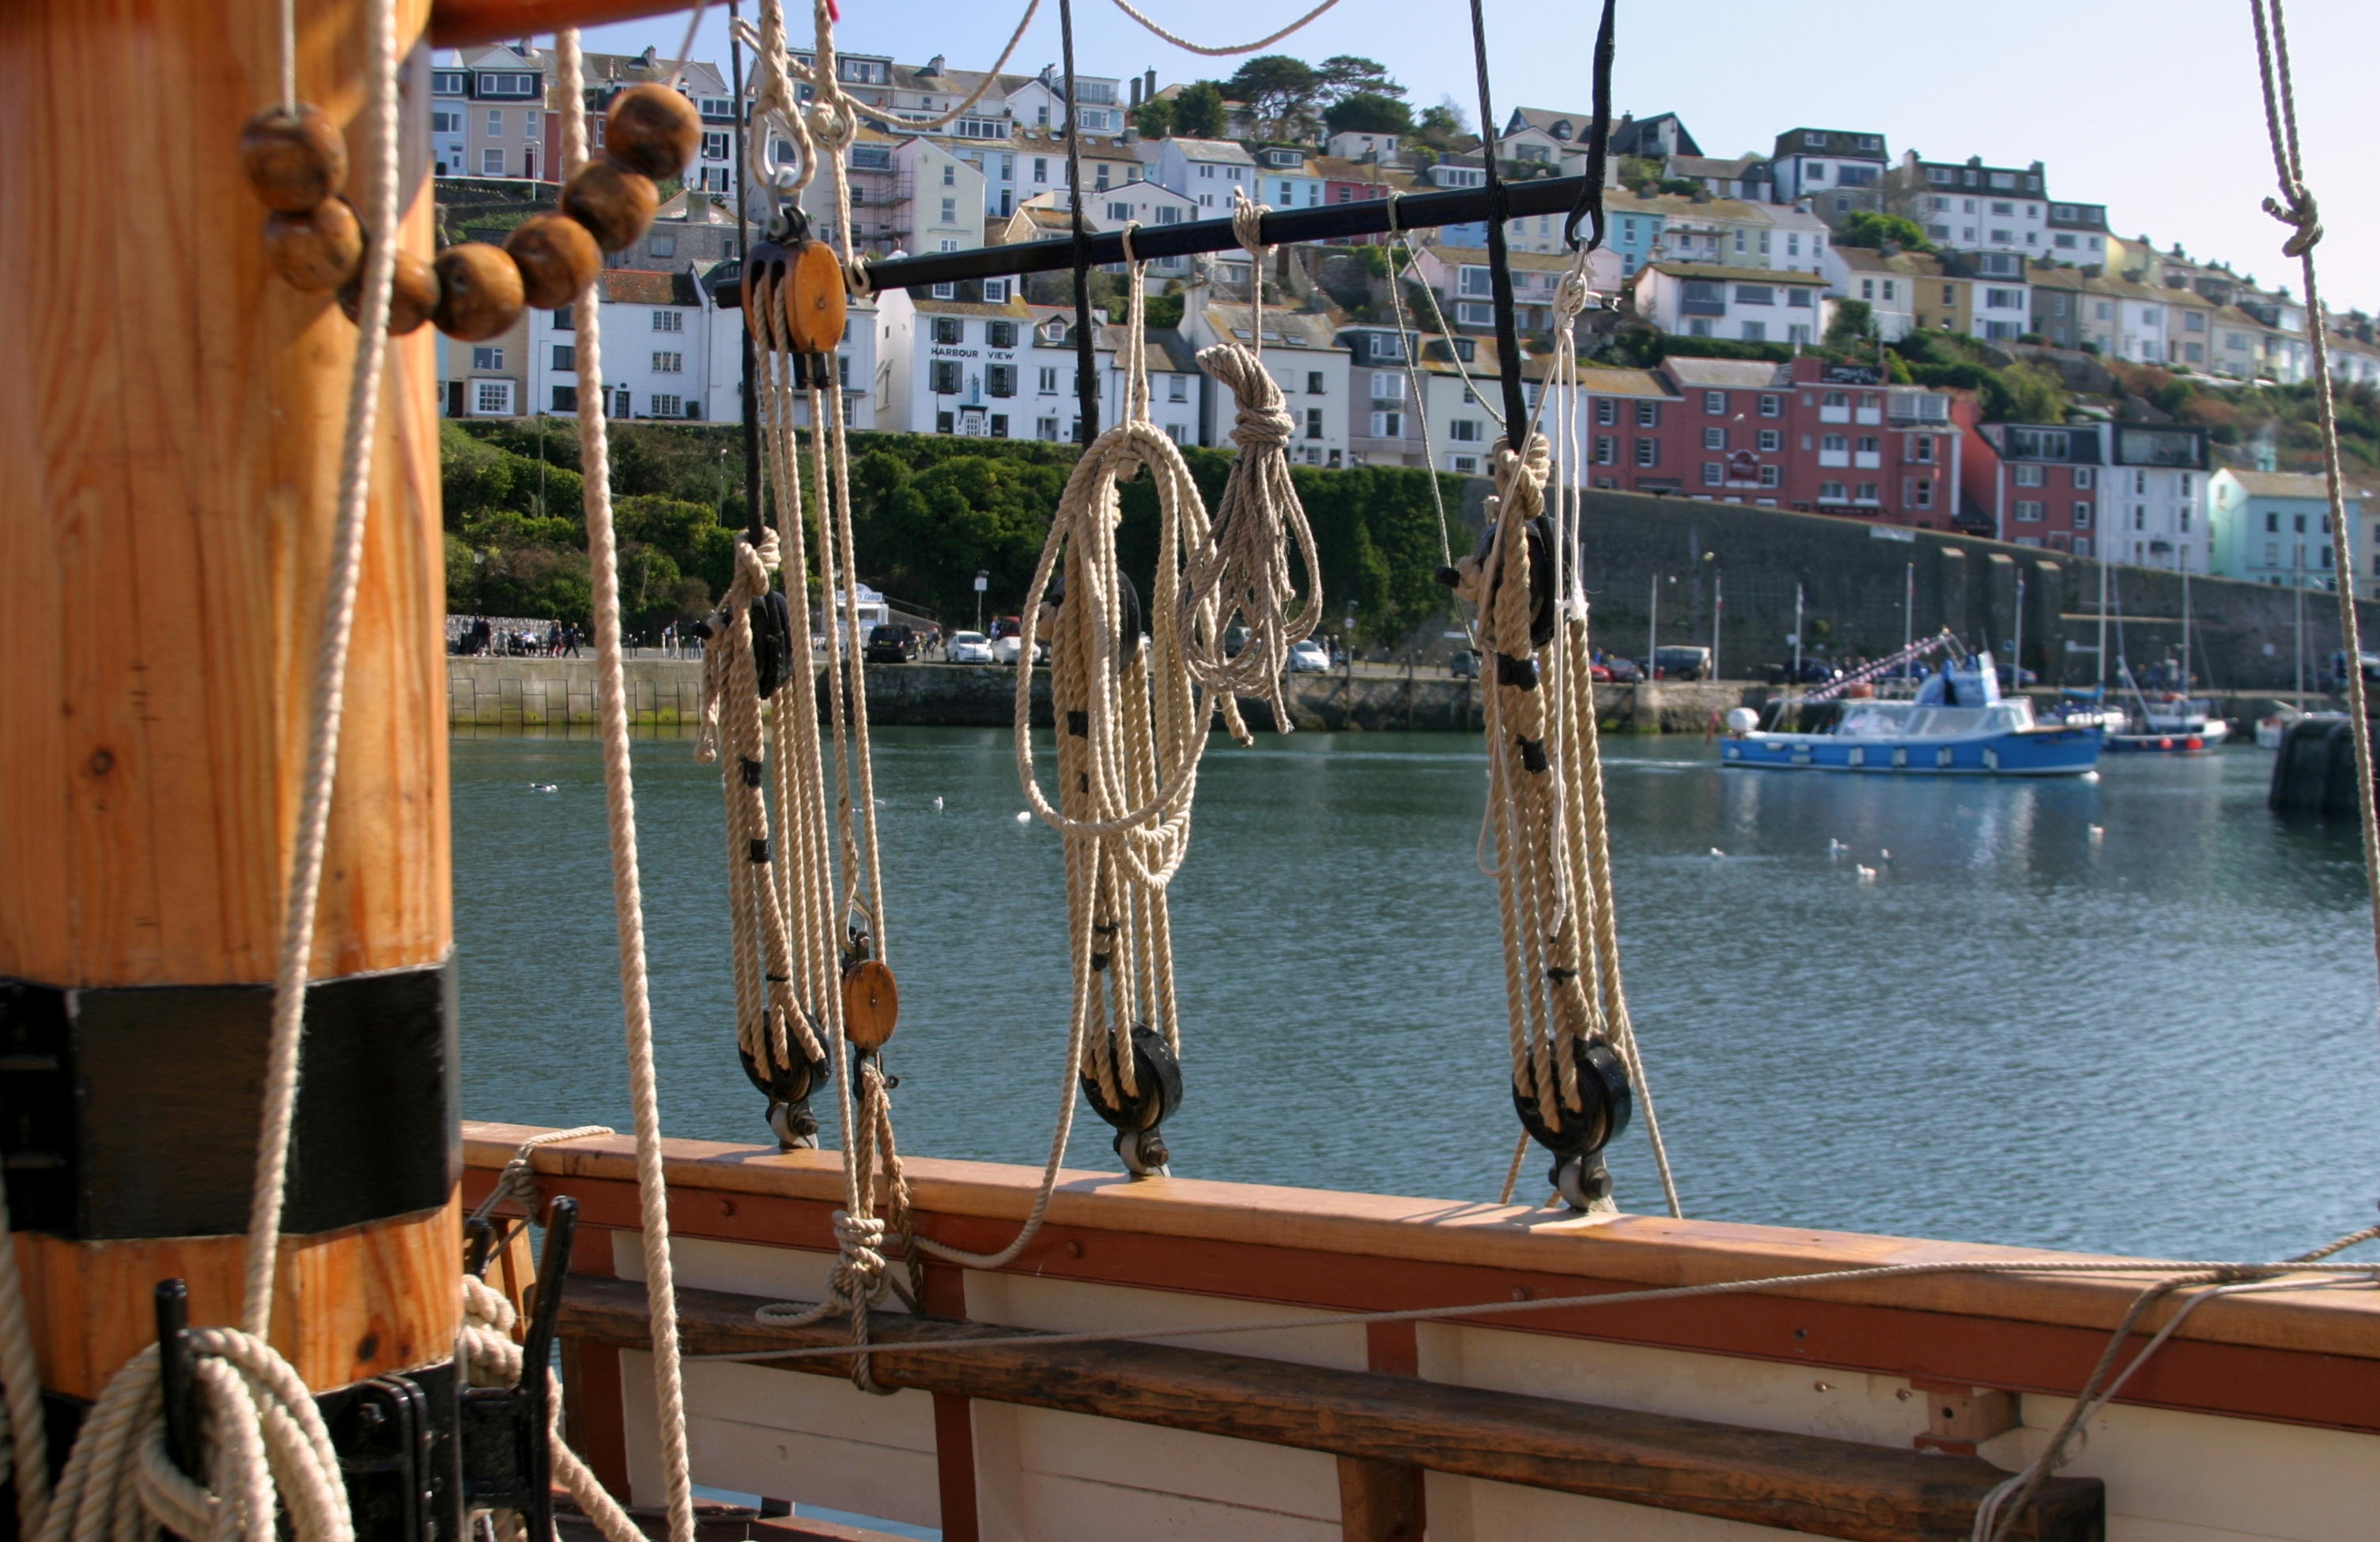 Brixham Boat Trip – Afternoon Half-Day Sail